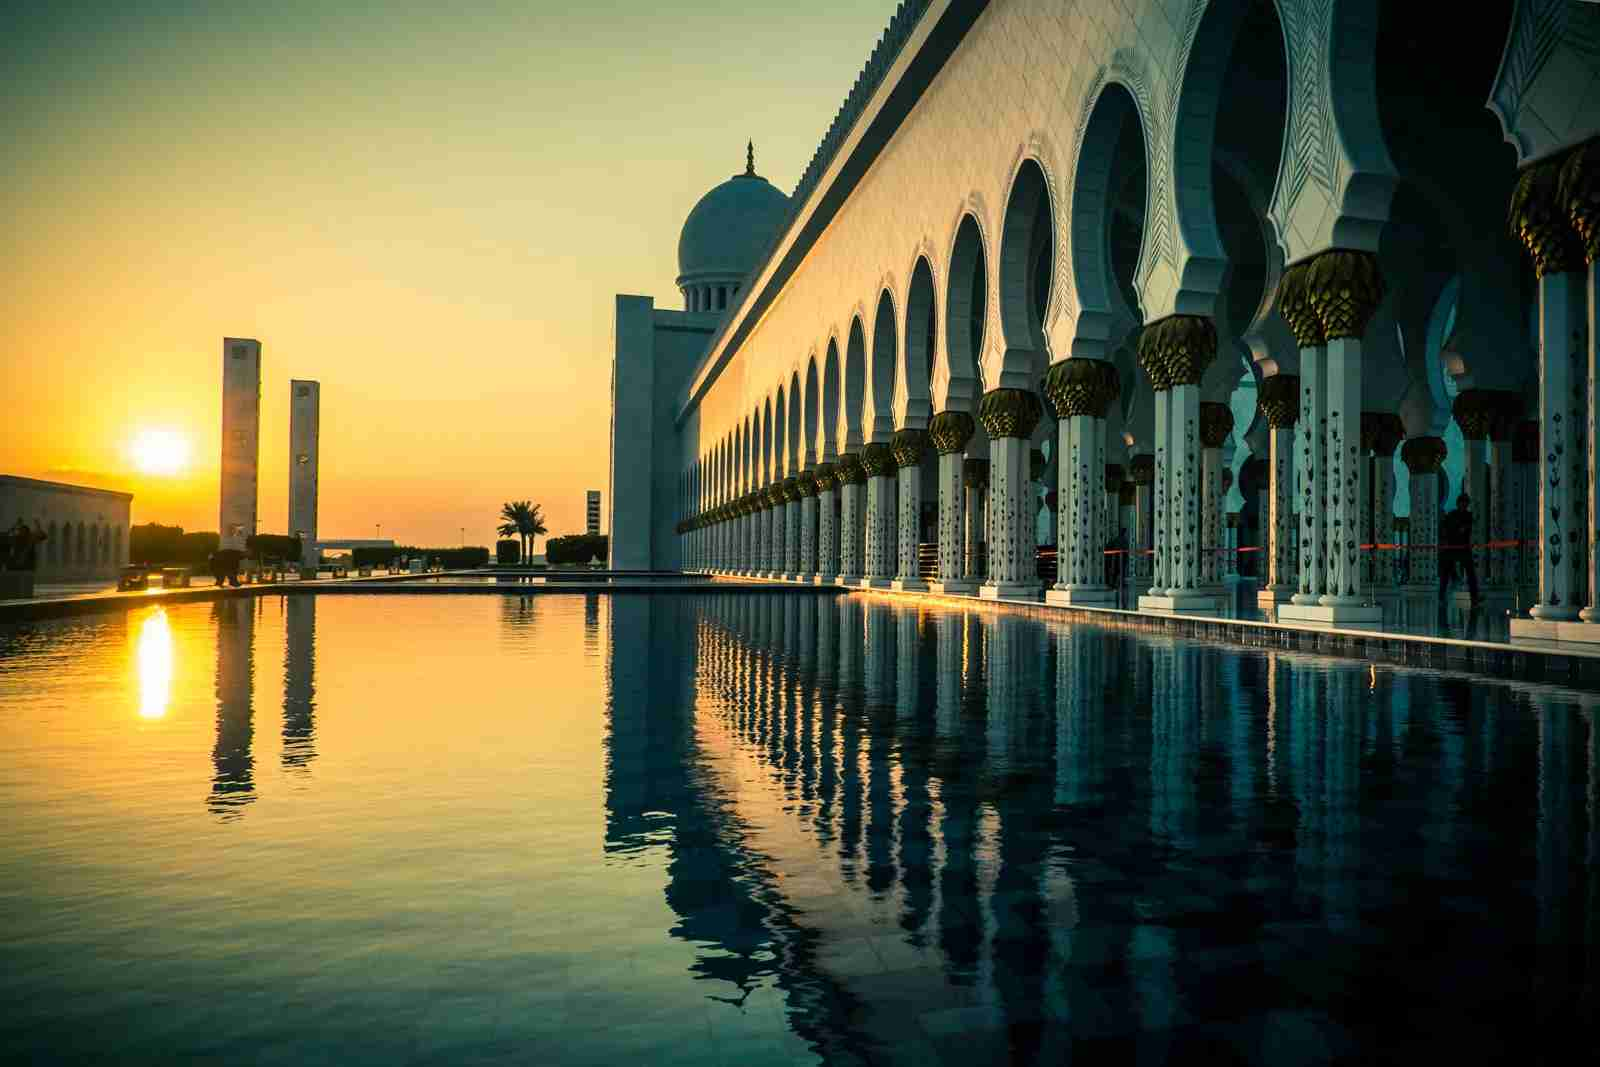 The Grand Mosque in Abu Dhabi. (Photo by ©Rodrigo Kristensen/Getty Images)